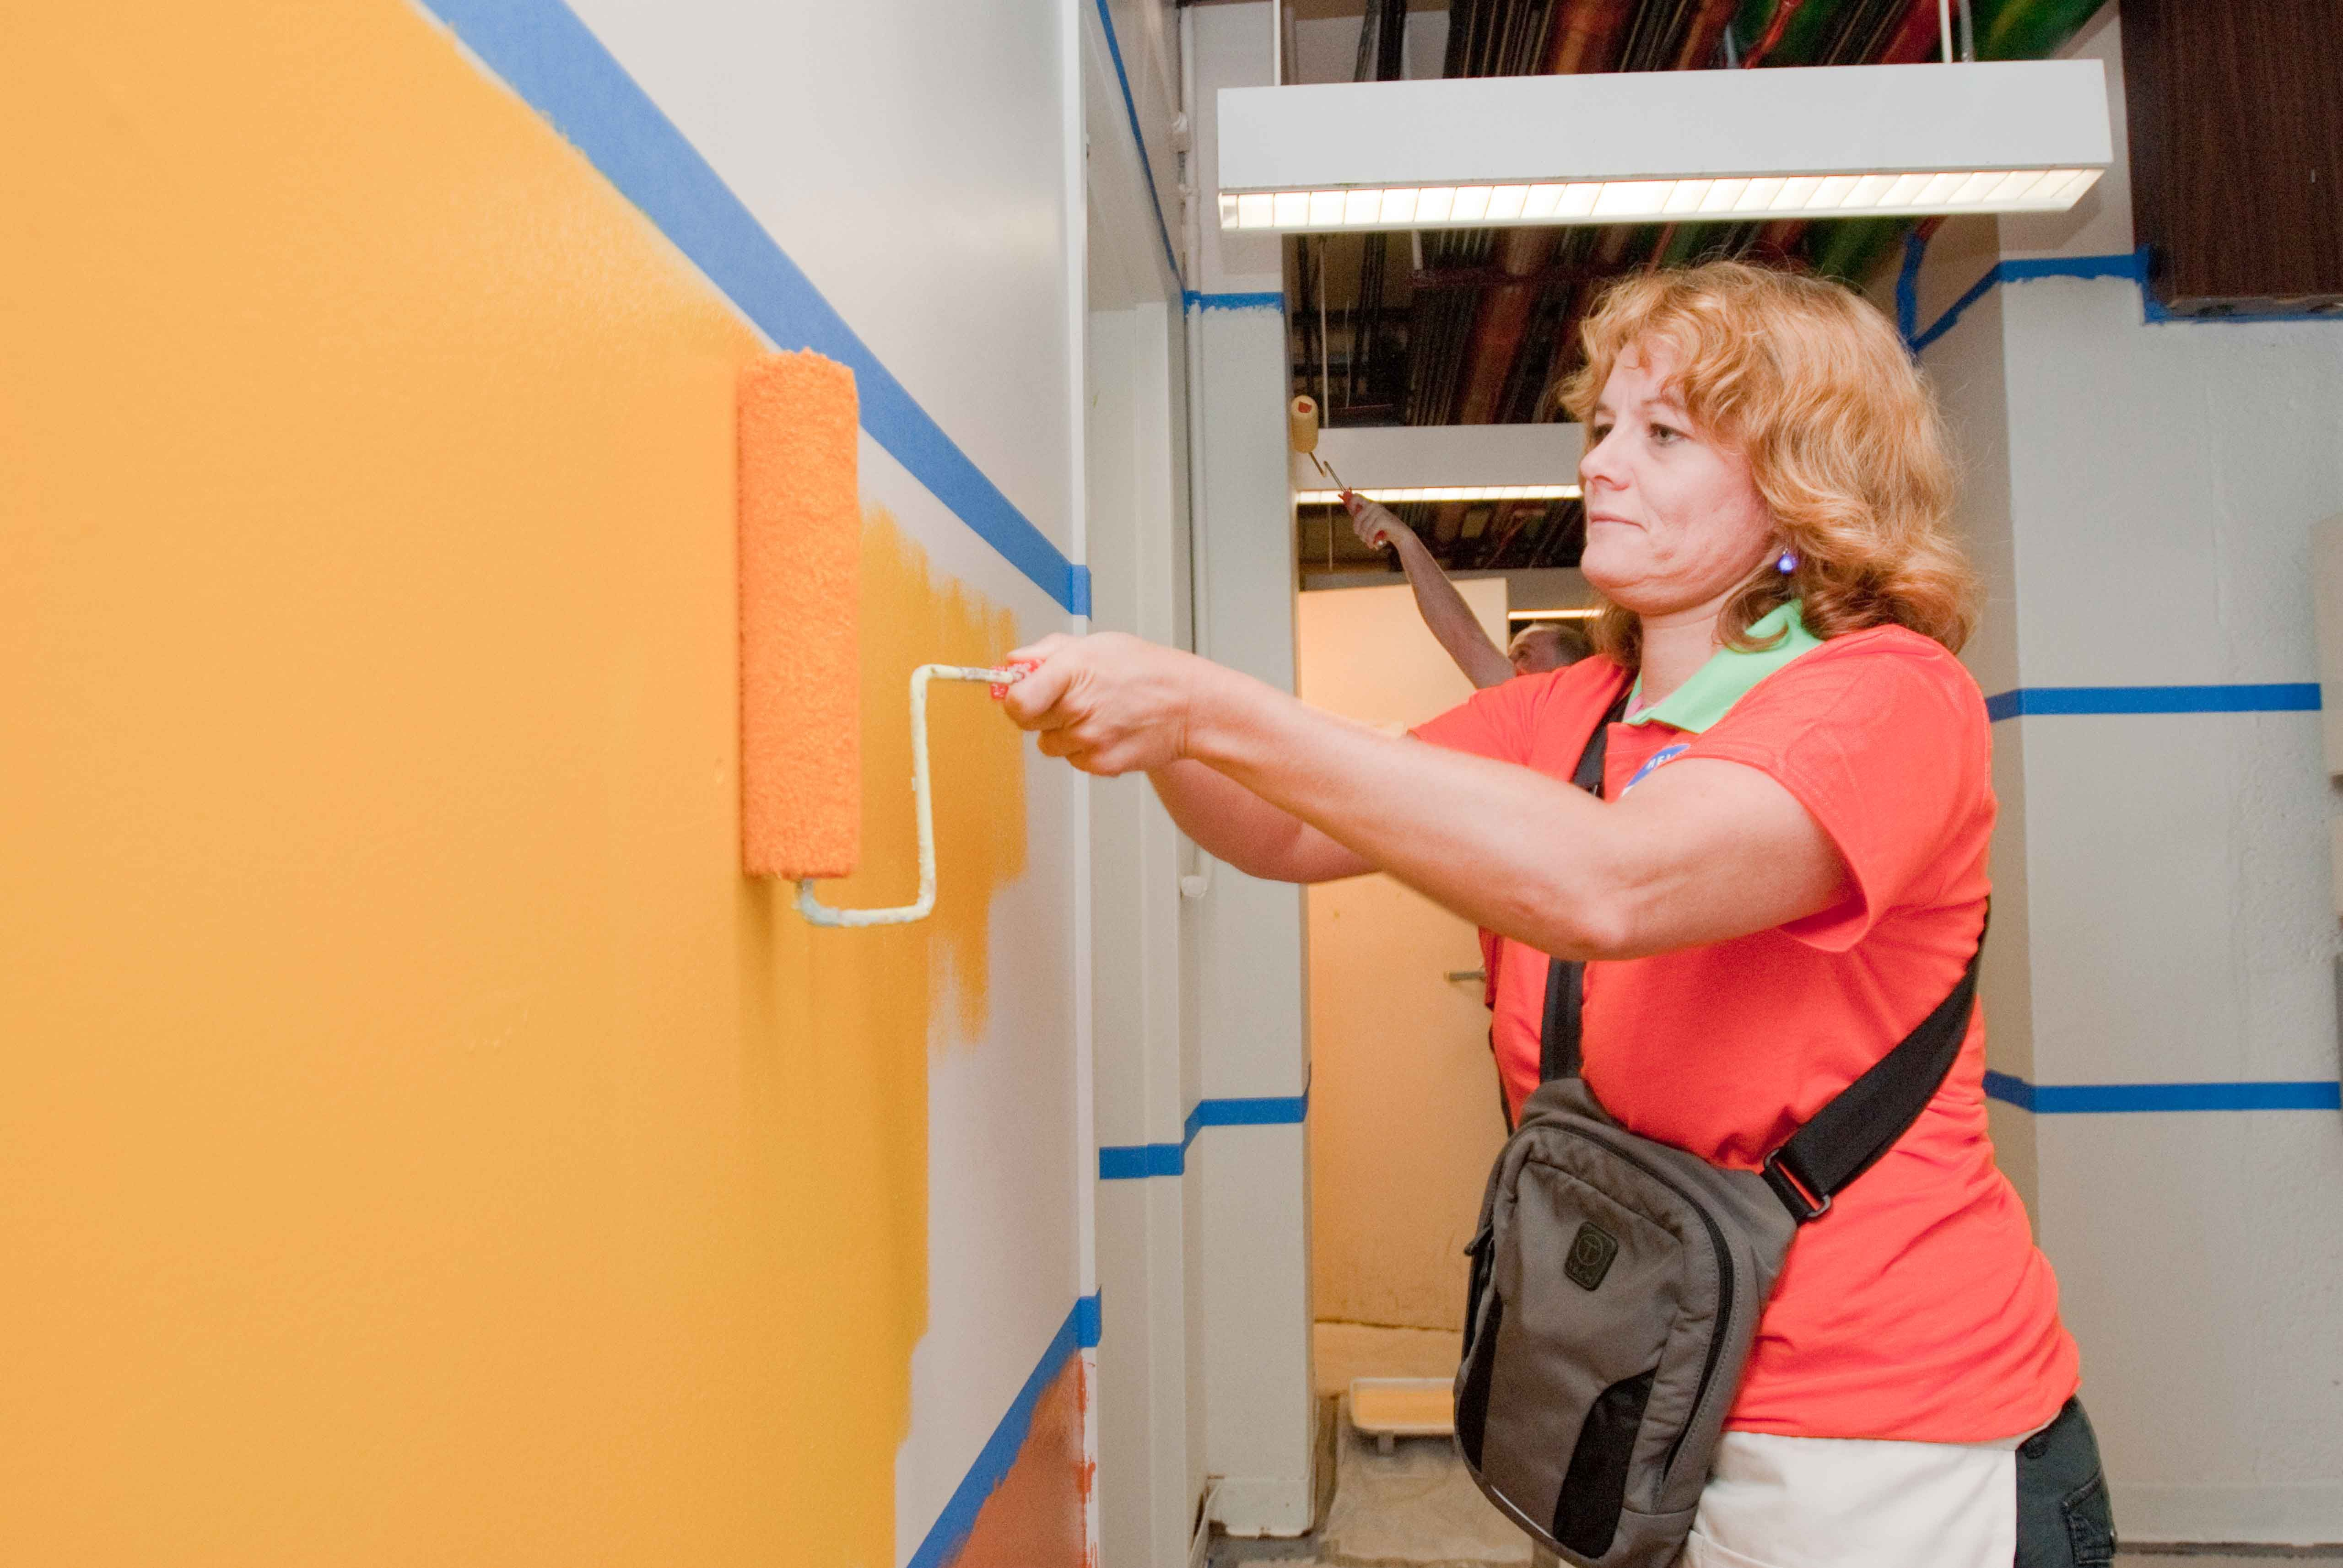 King Towers Community Center gets a fresh coat of paint from many caring volunteers